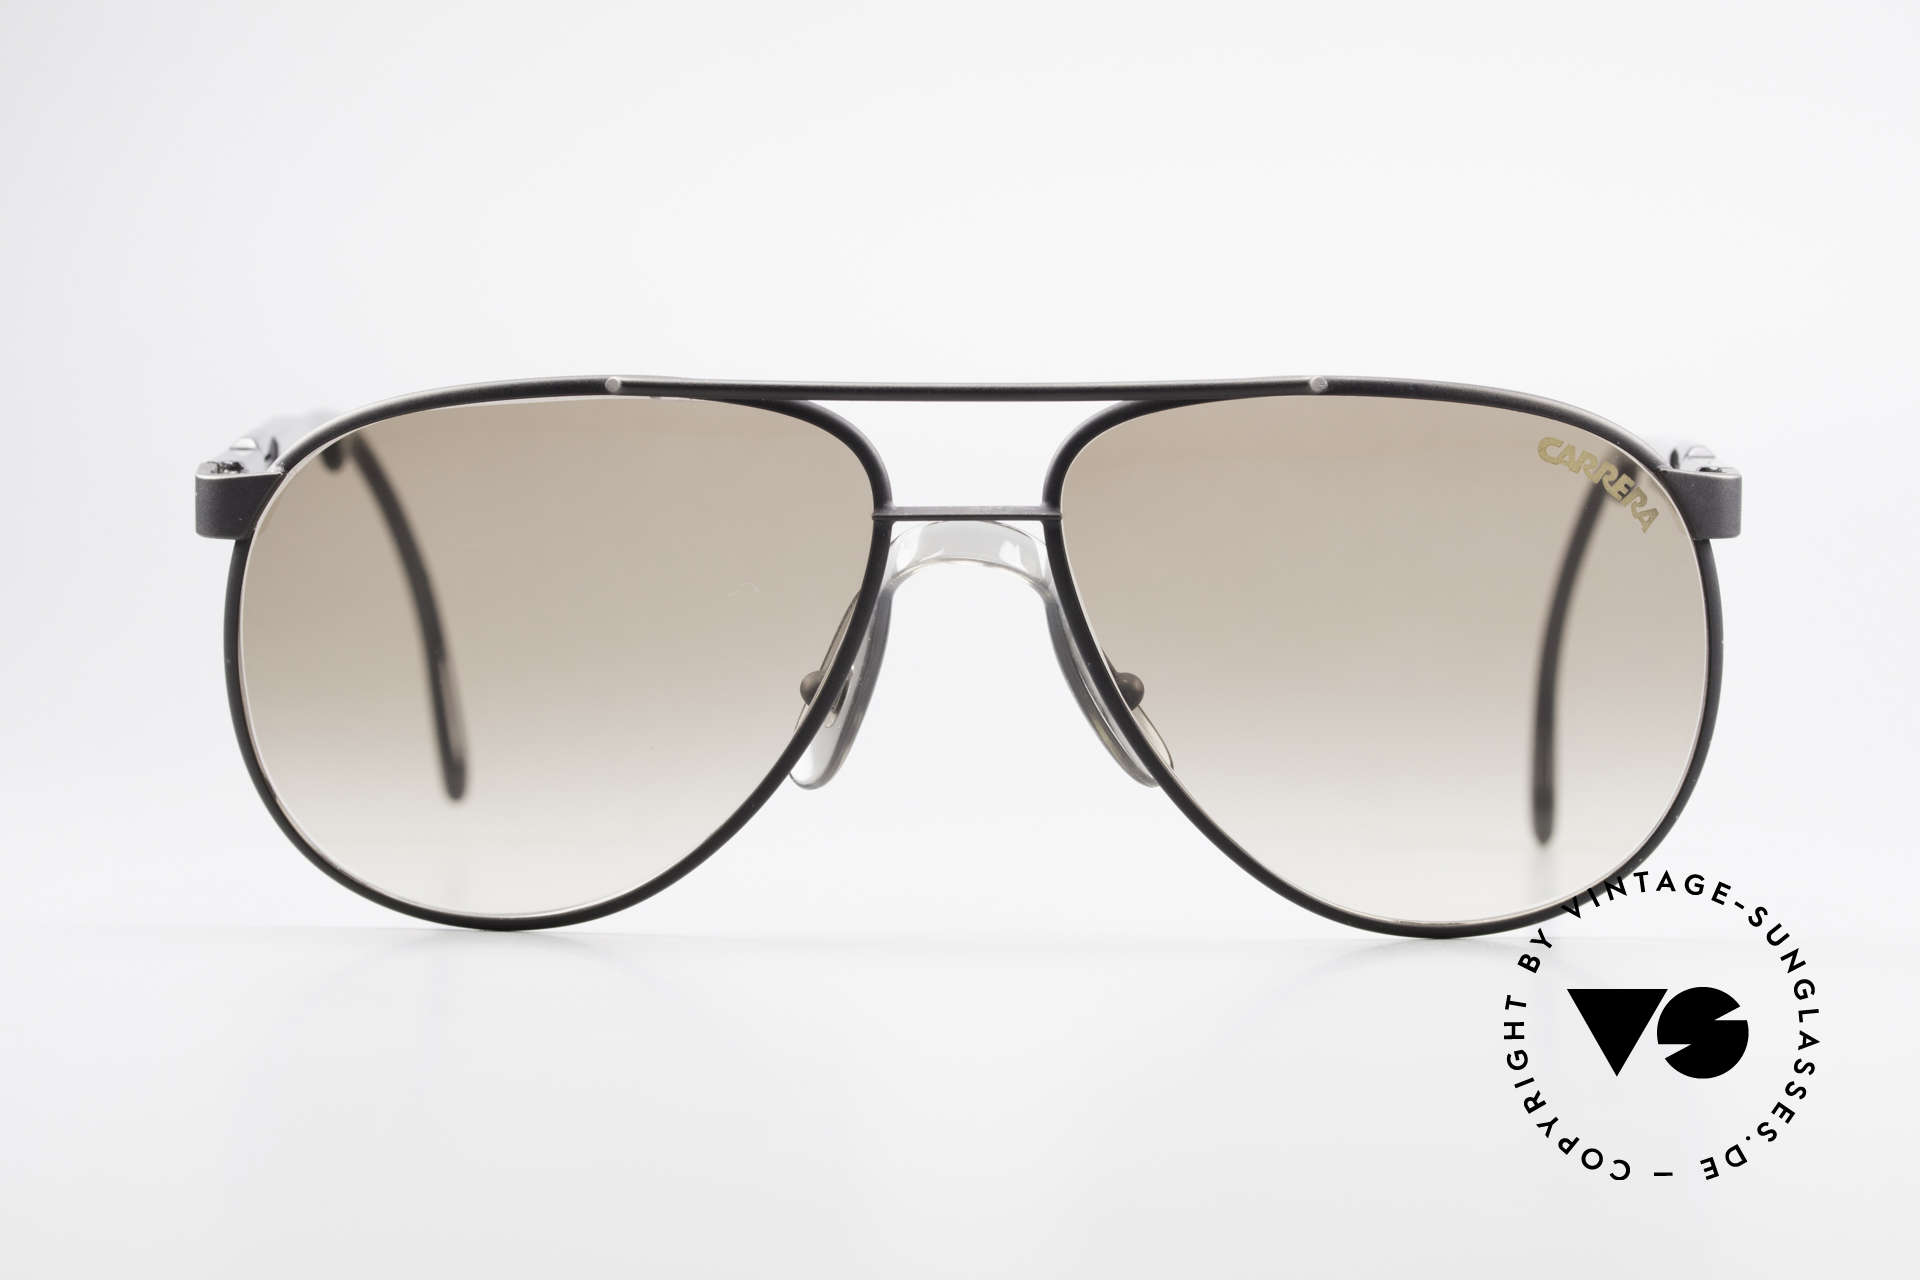 Carrera 5348 Vario Sports Sunglasses 80's, 'sporty' and 'classic' at the same time = CARRERA!, Made for Men and Women